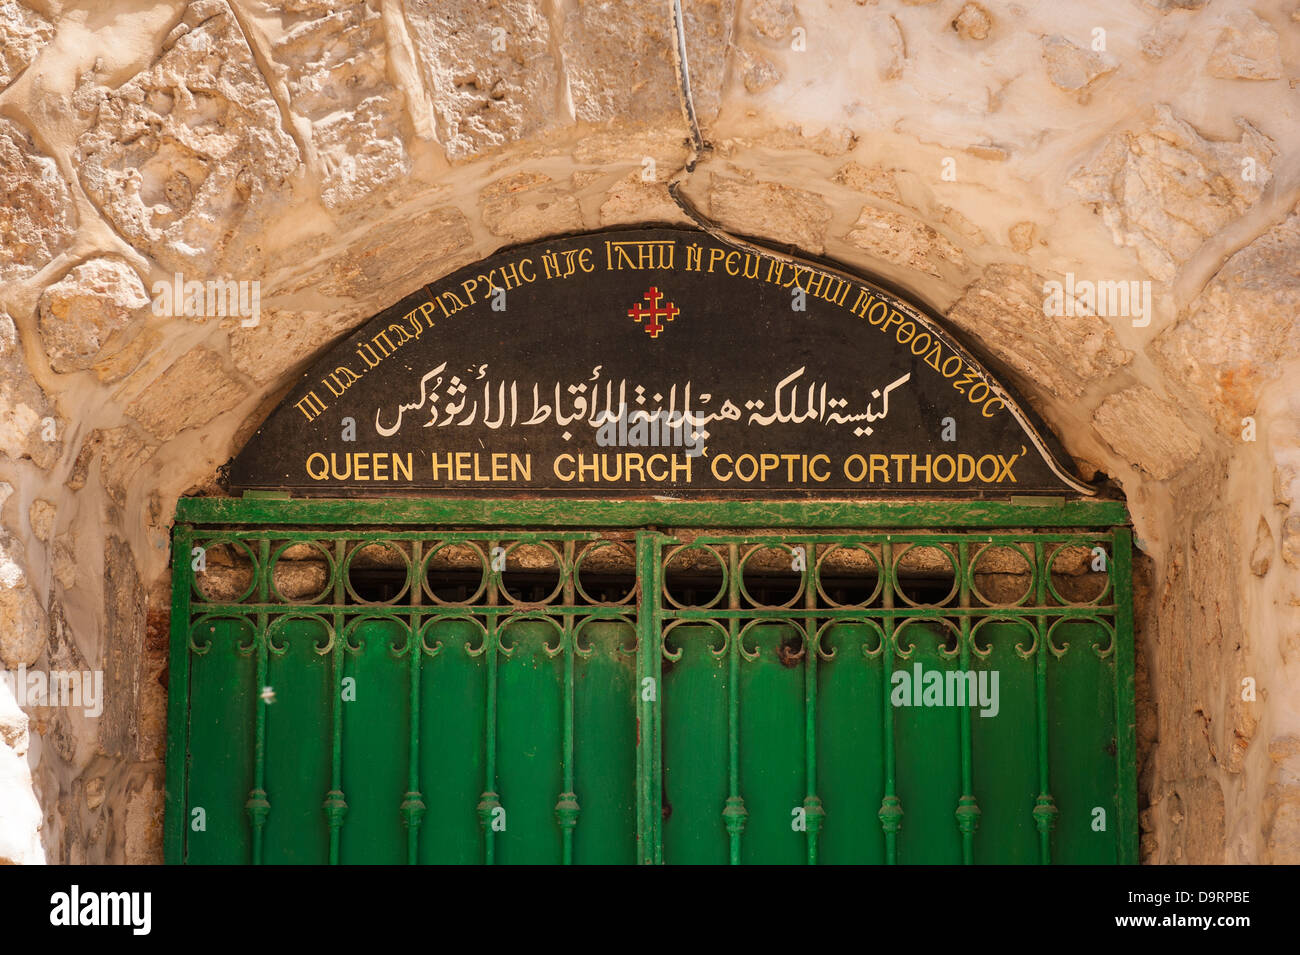 Israel Jerusalem Old City Queen Helen Church Coptic Orthodox  9 9th Station of the Cross Jesus fell 3rd time door - Stock Image